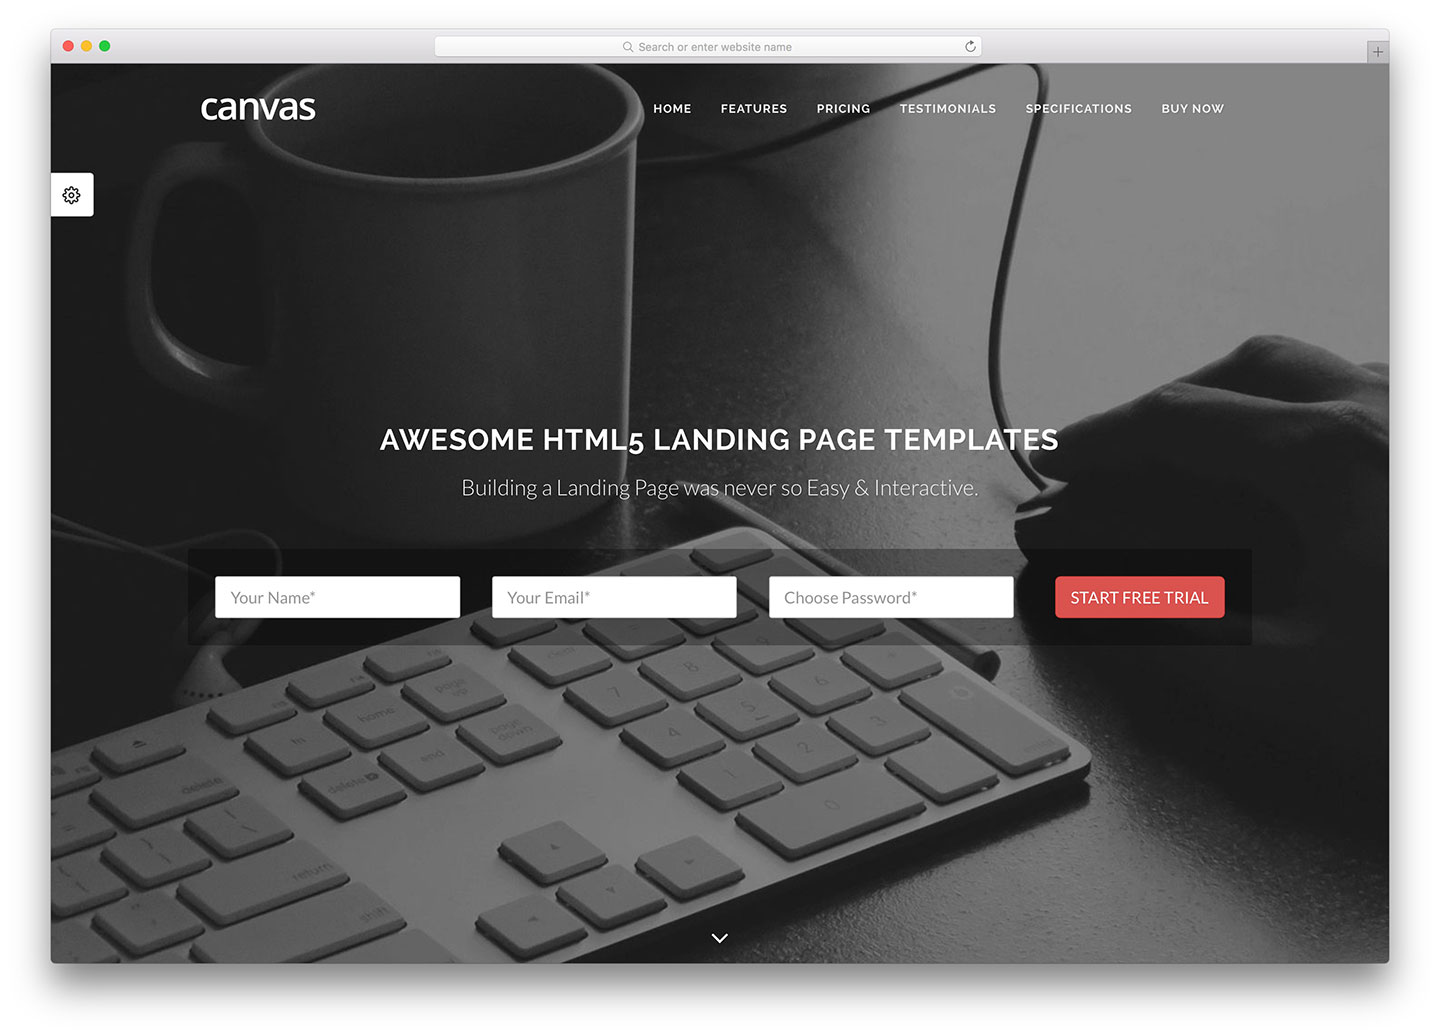 28 Awesome Landing Page Templates To Showcase Your Product Or Service [HTML & WordPress] 2018